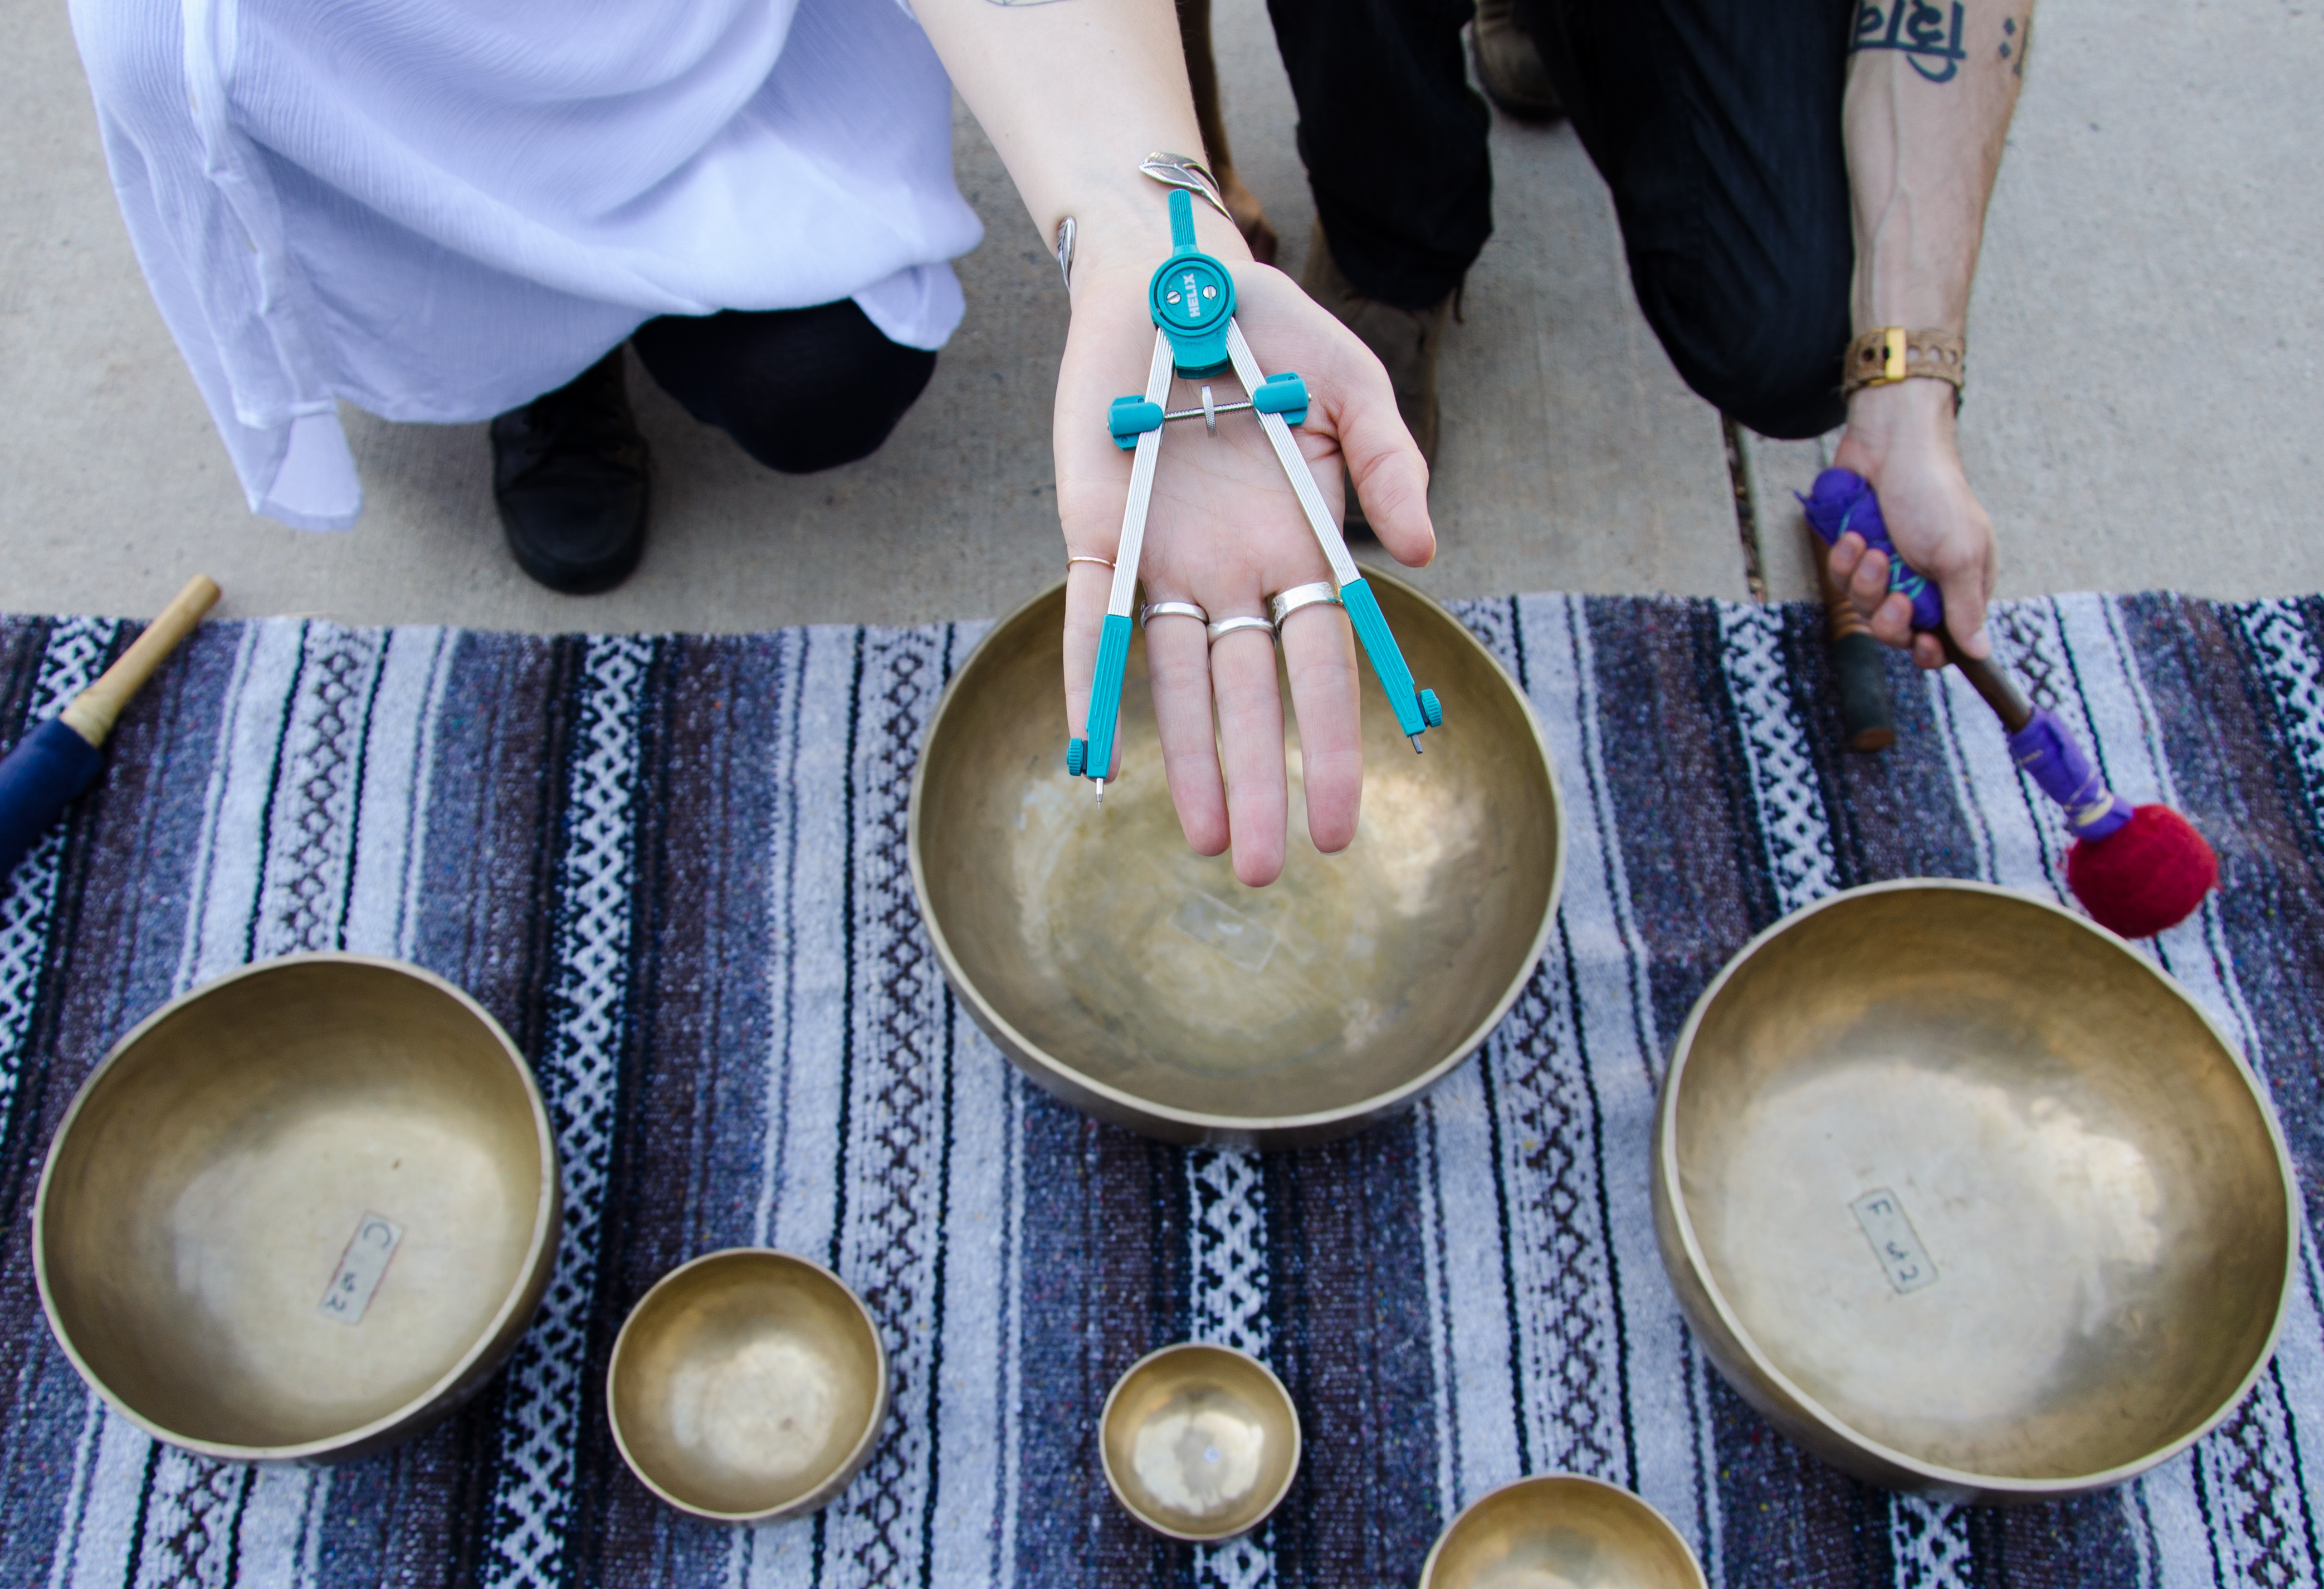 Photo: Artist Gemma Danielle's Compass And Sound Bowls